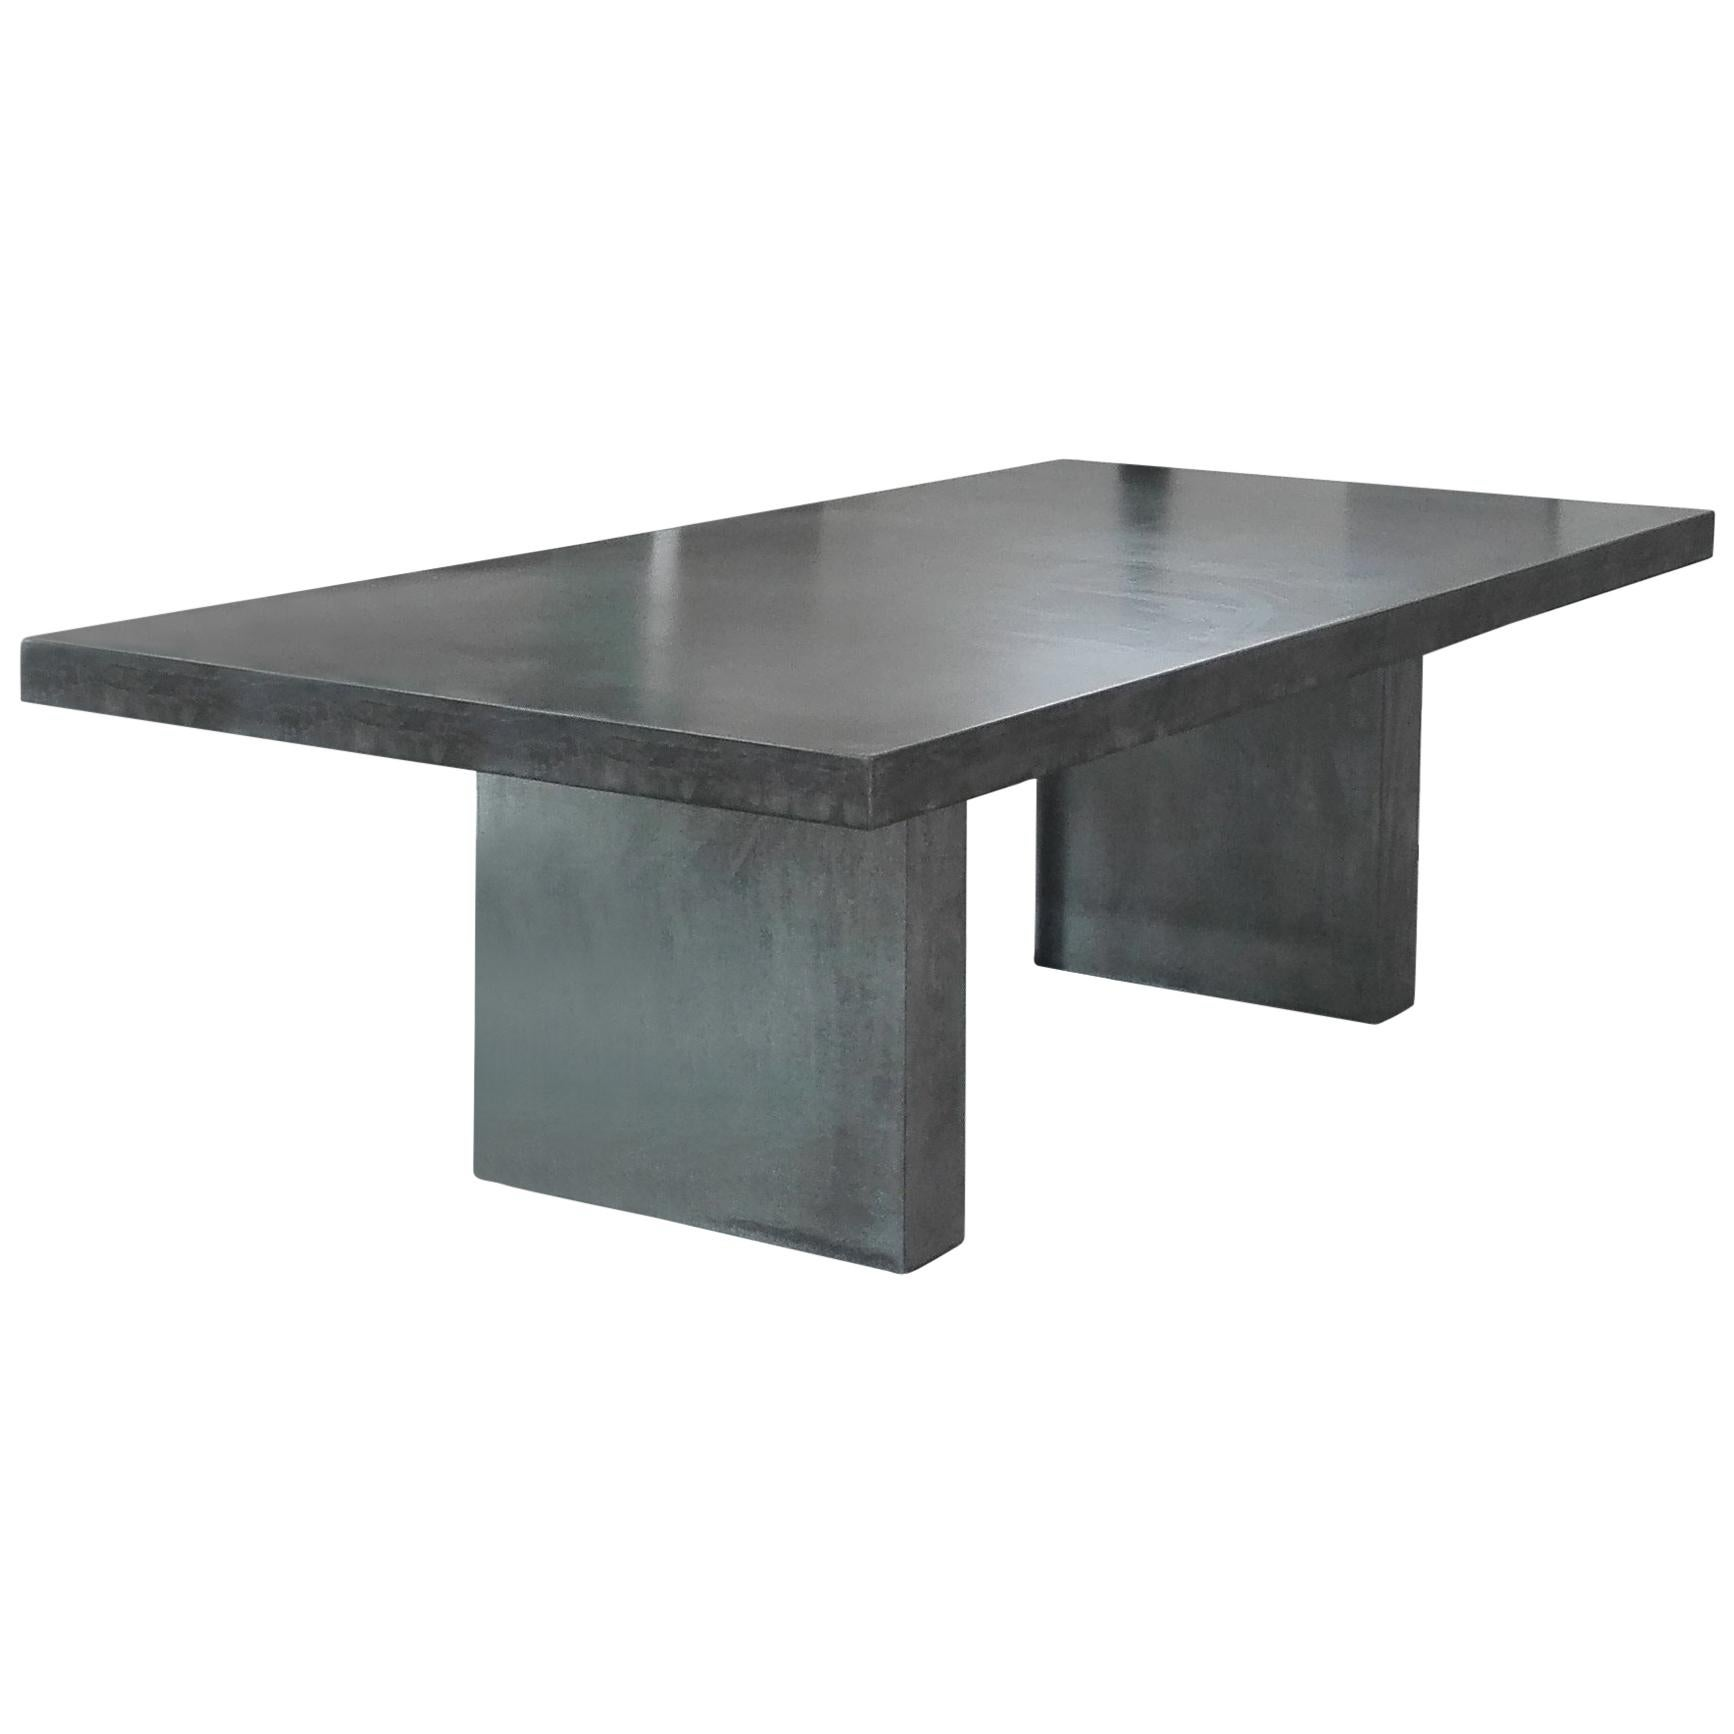 Giorgione Concrete Dining Table 100 Handcrafted In Italy For Sale At 1stdibs